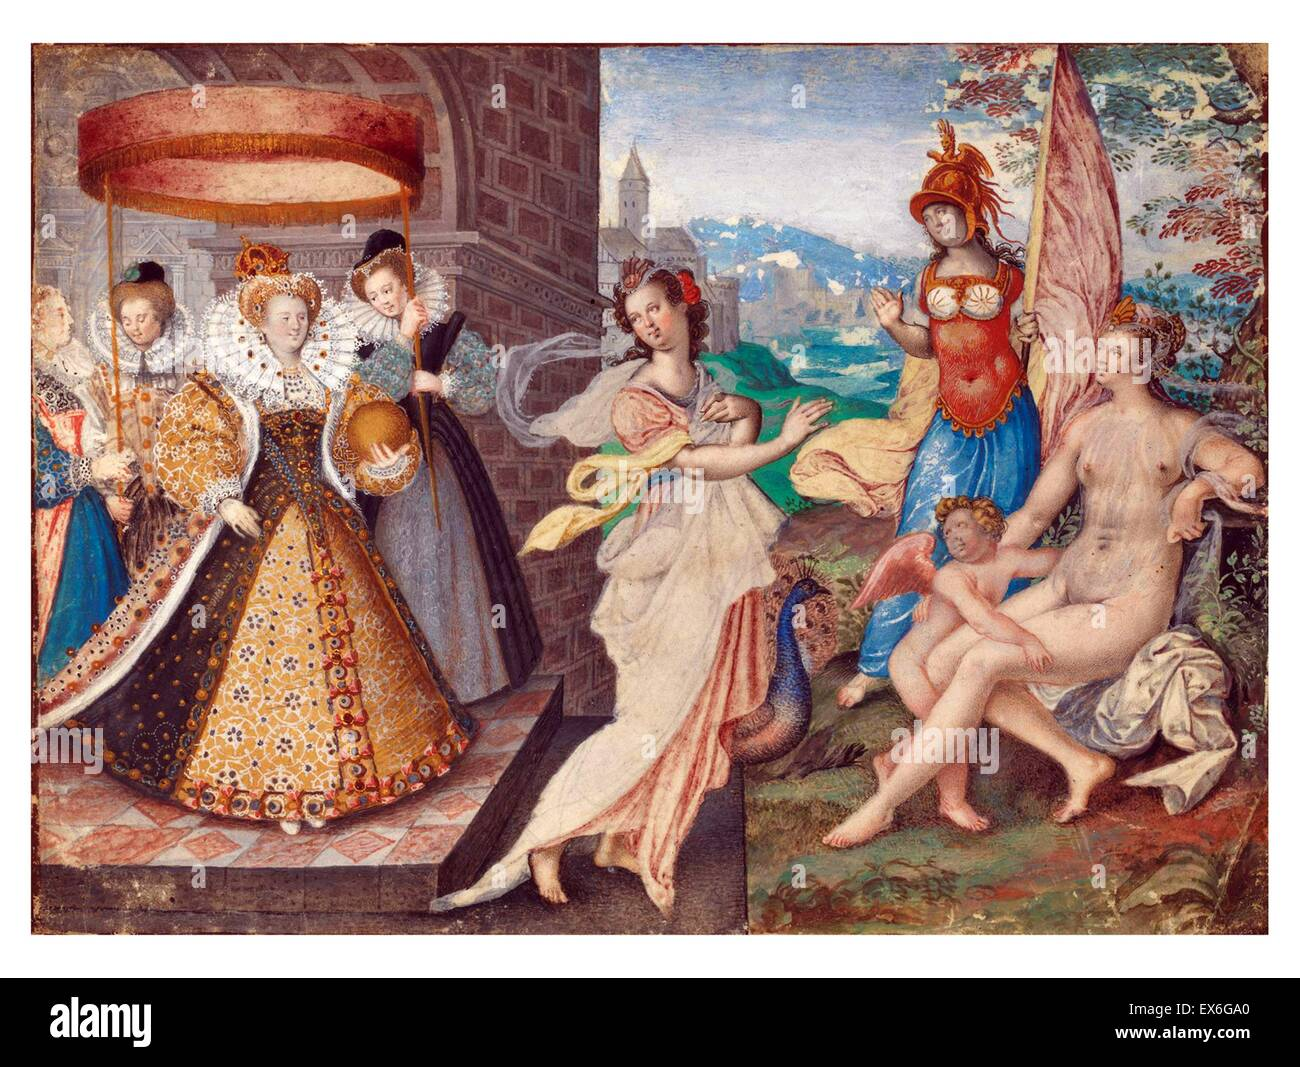 Queen Elizabeth I of England and the Three-Goddesses, by Isaac Oliver 1590 - Stock Image